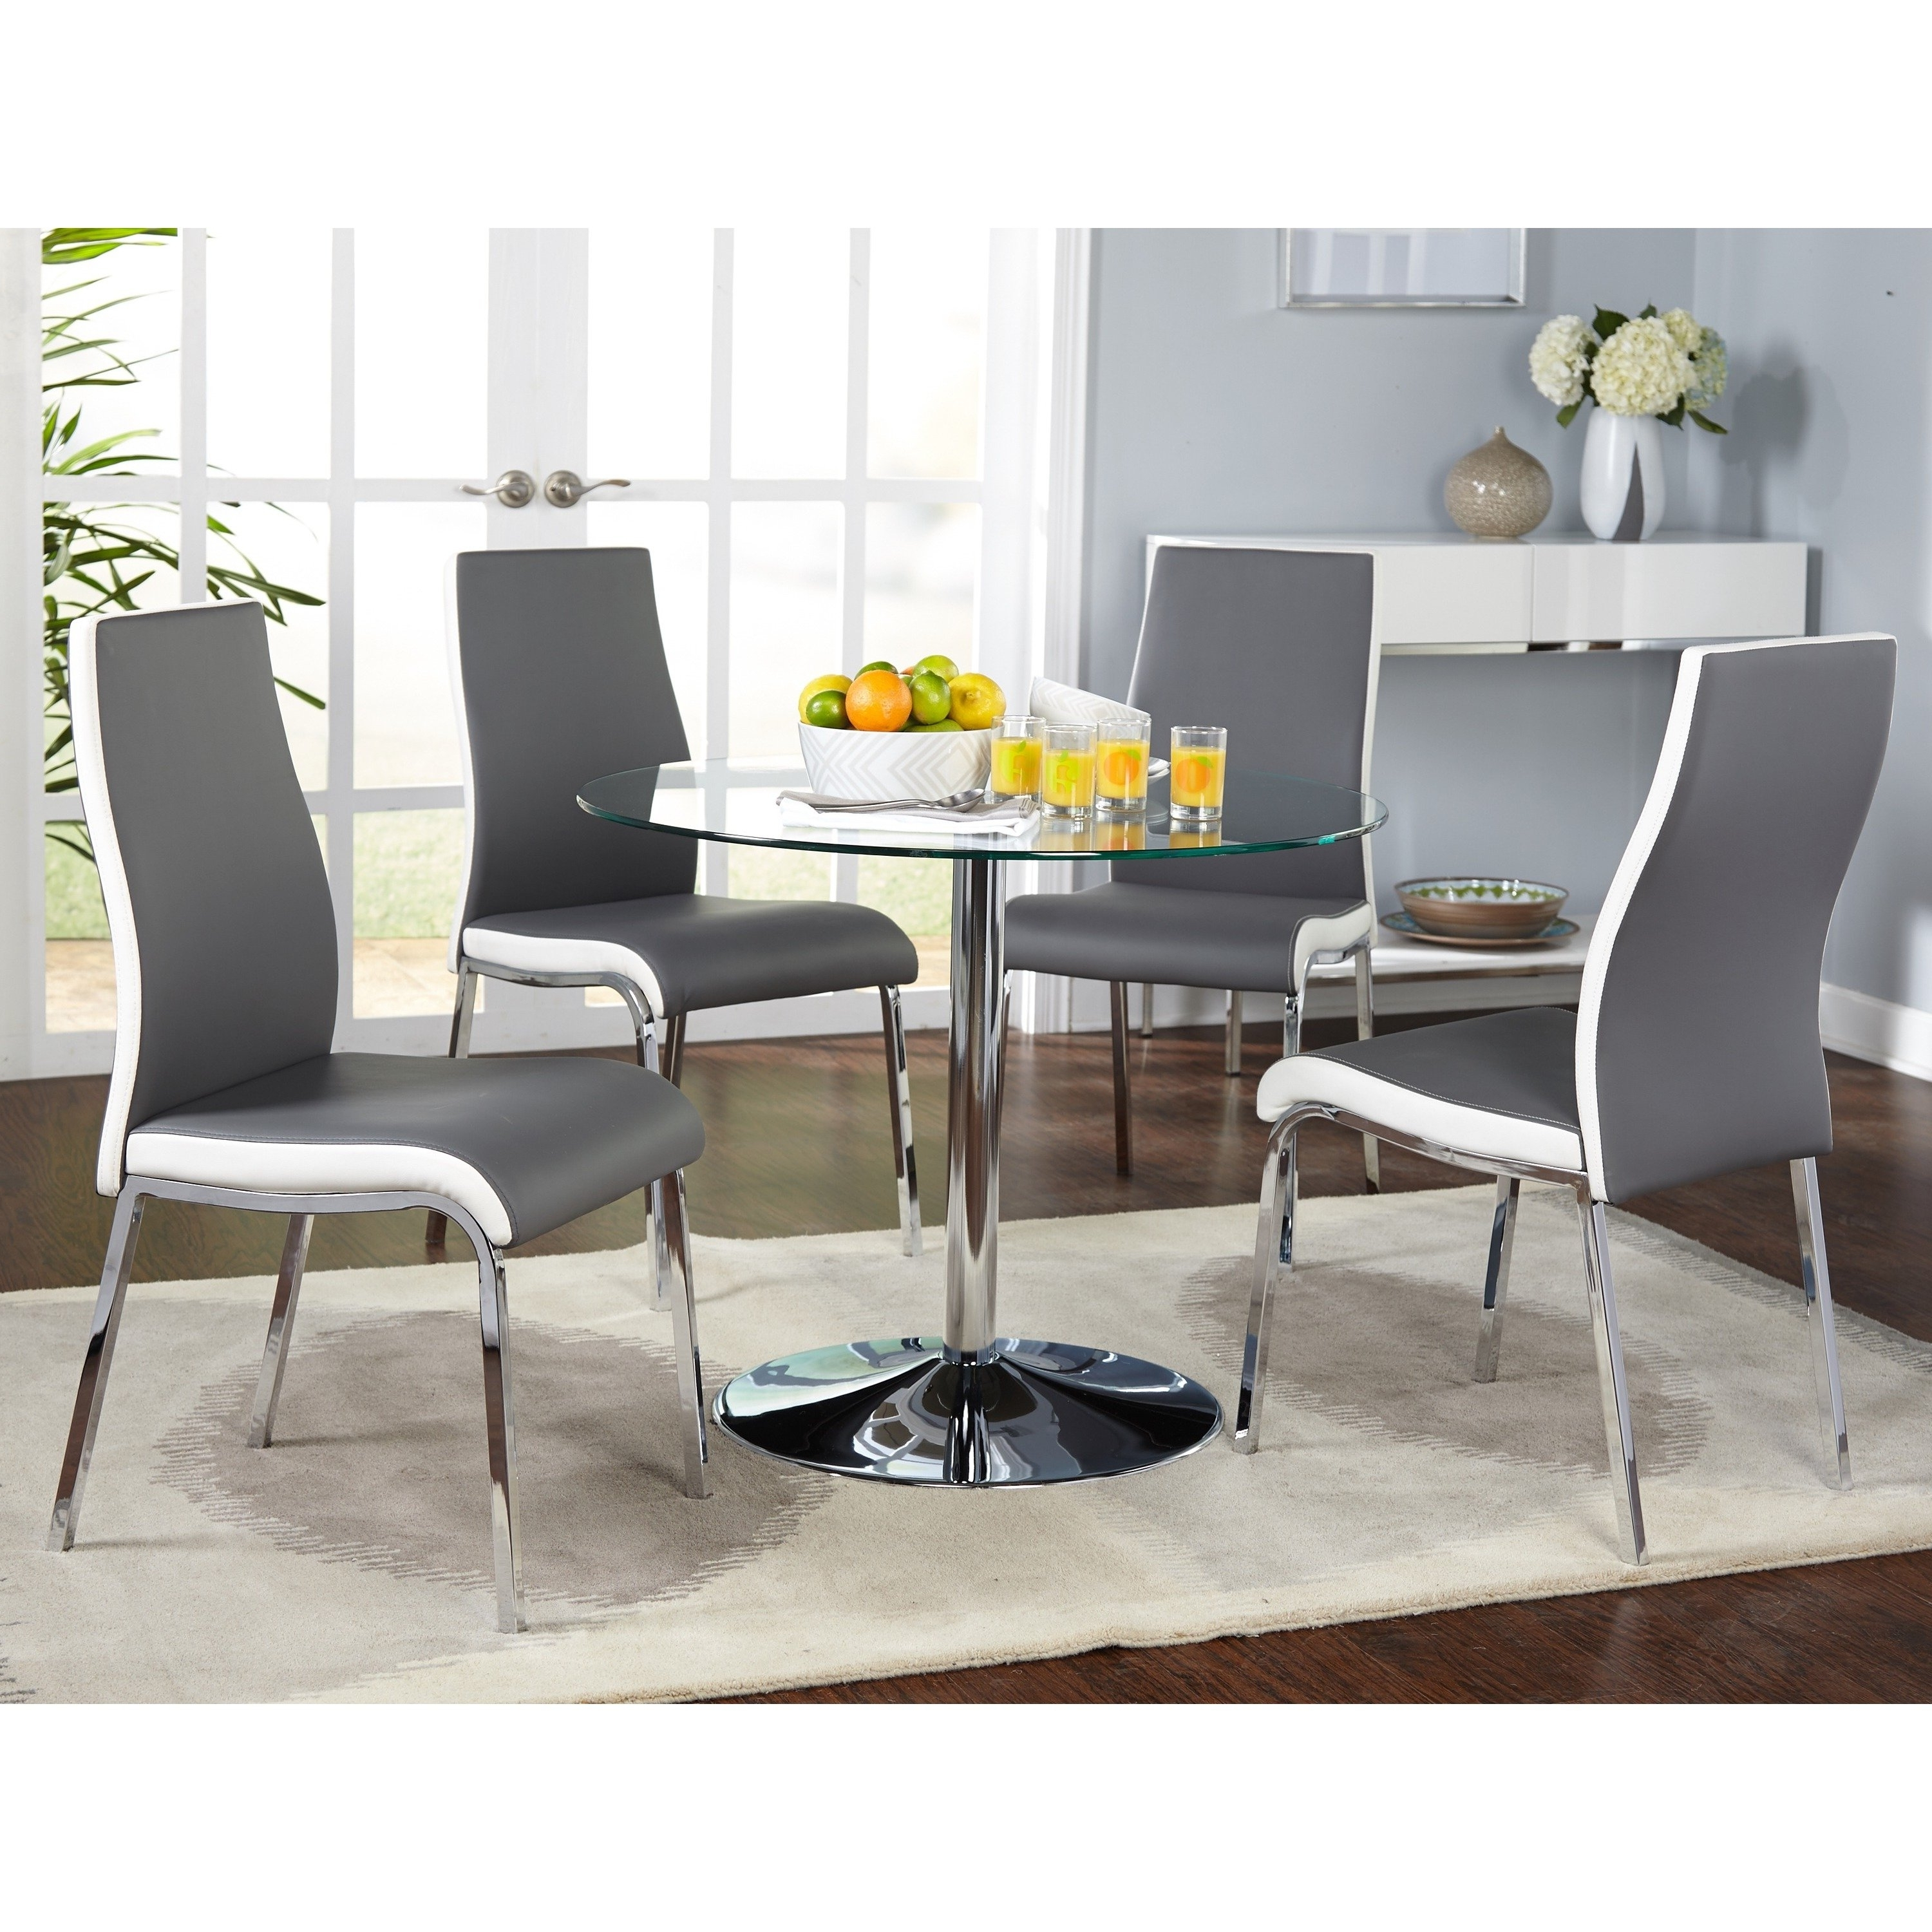 Nora Dining Tables For Favorite Shop Simple Living Nora Modern Dining Room Set – Free Shipping Today (Gallery 14 of 25)